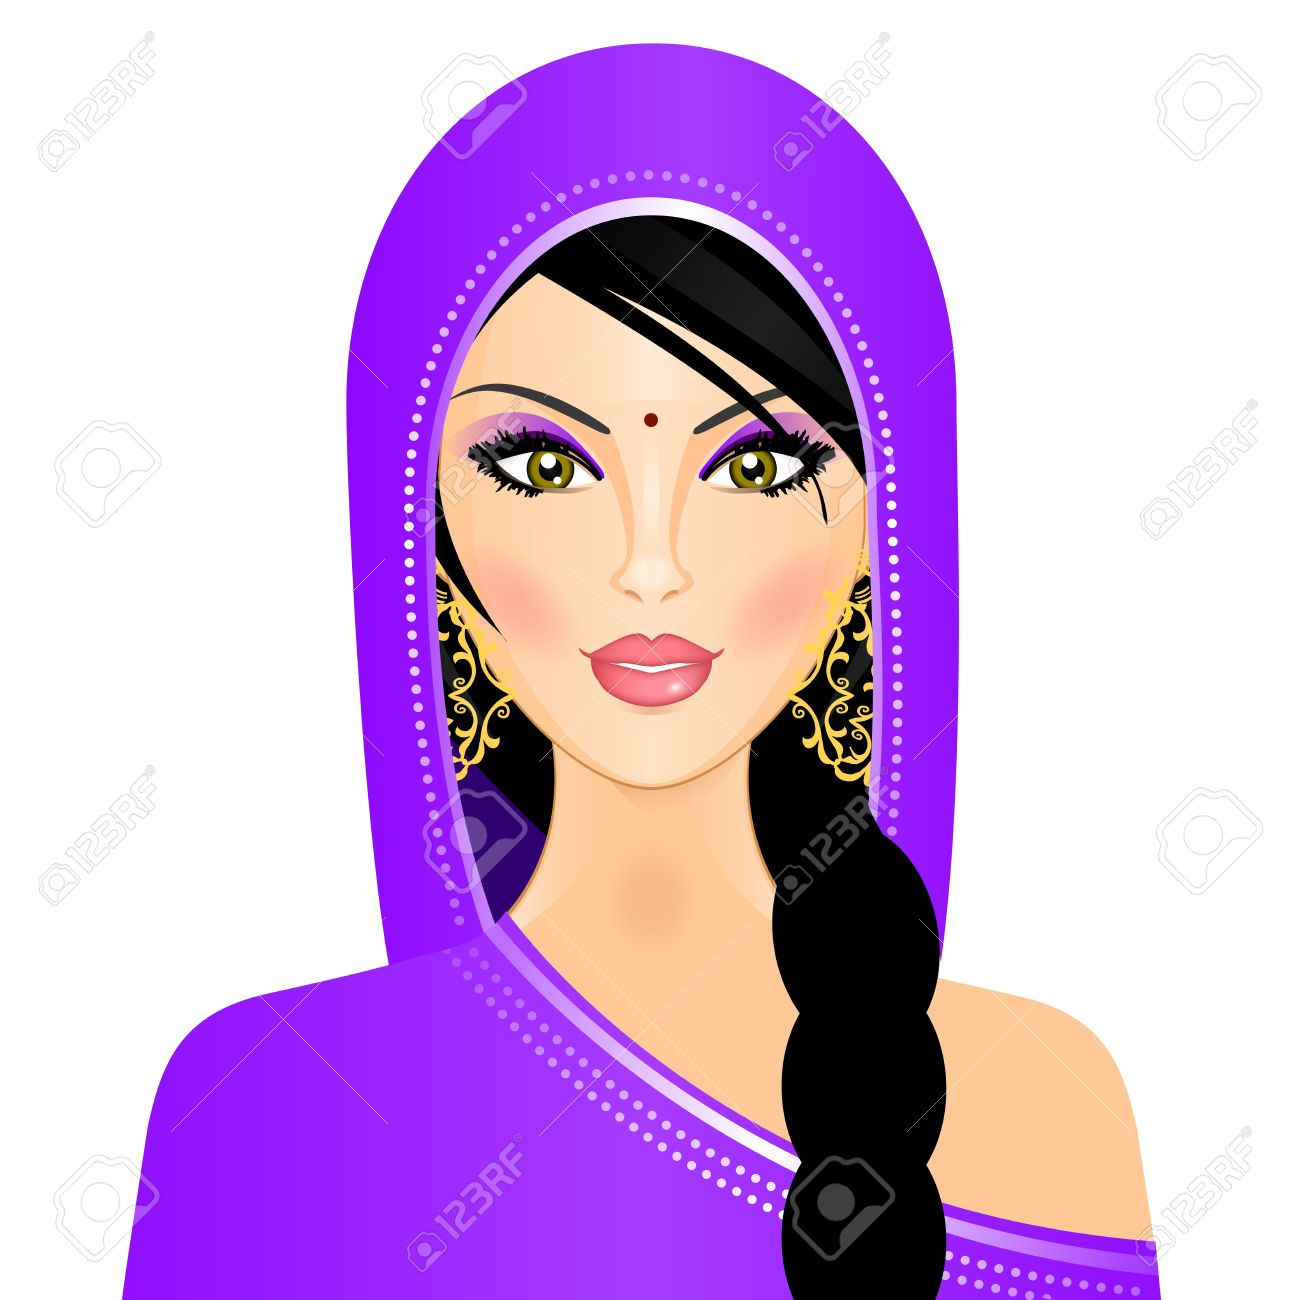 illustration of Indian woman.